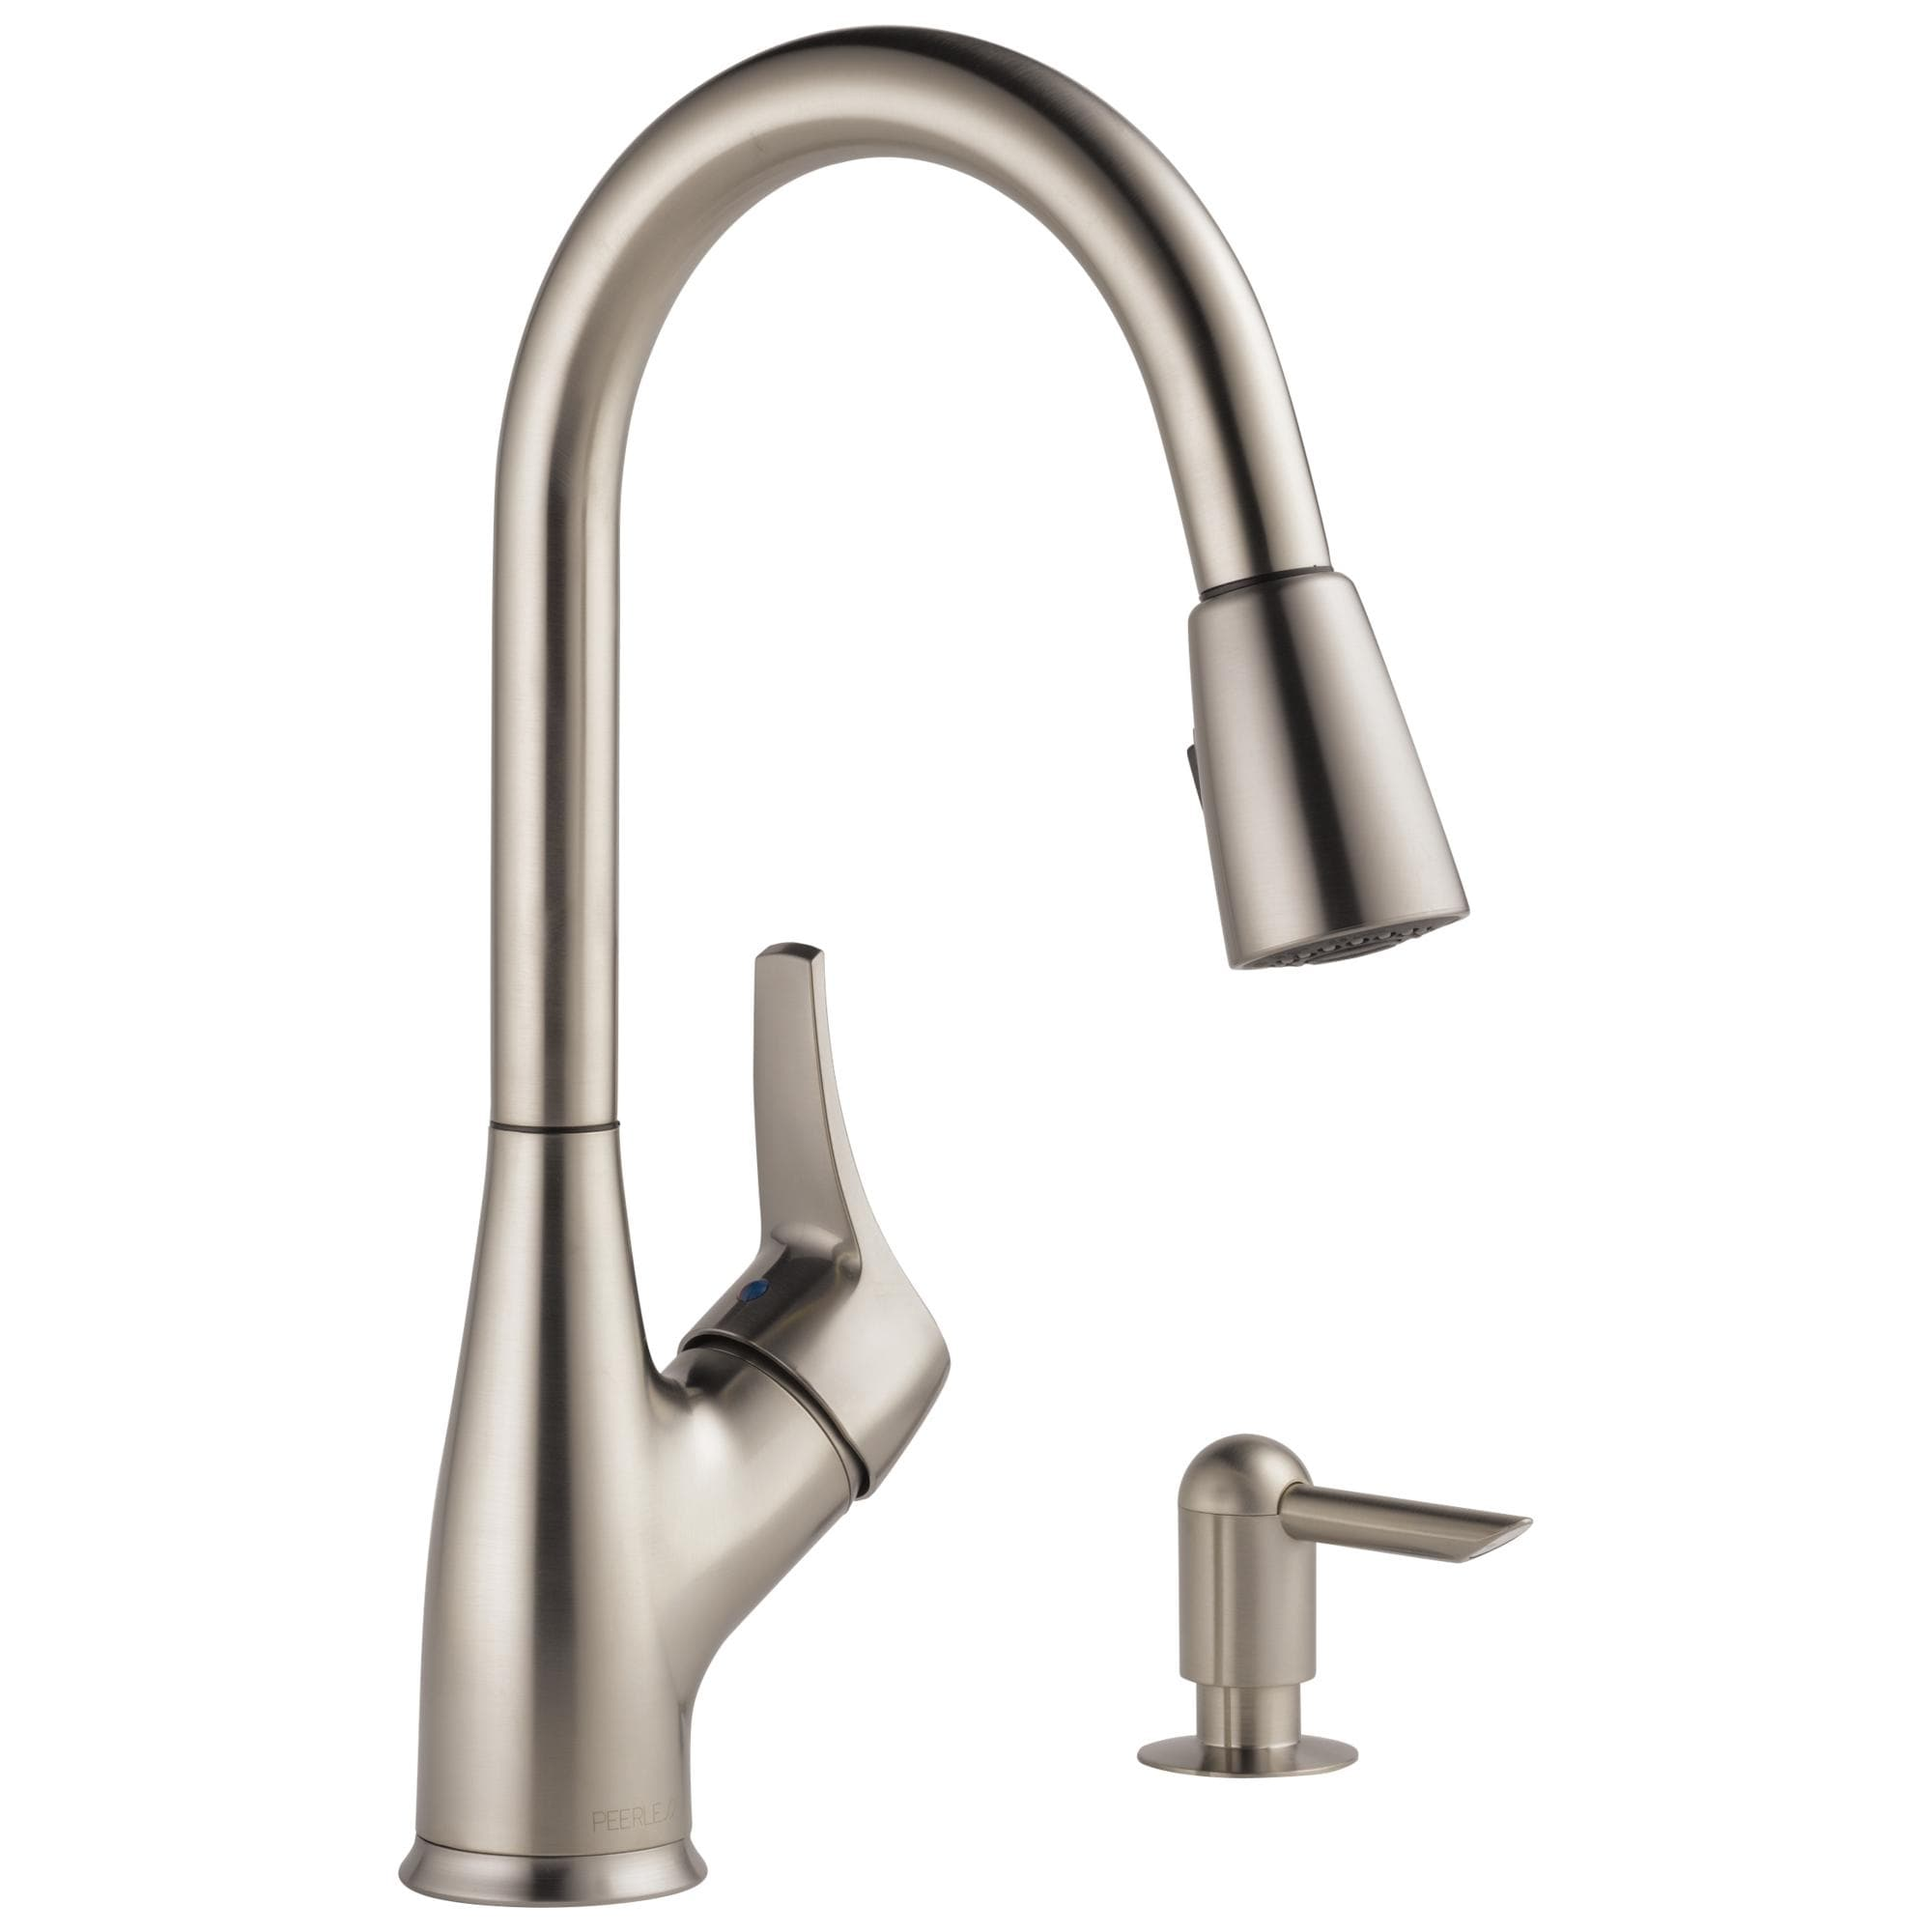 Delta Peerless Single Handle Pull Down Kitchen Faucet With Soap Dispenser Stainless P88121lf Sssd W Overstock 20693872